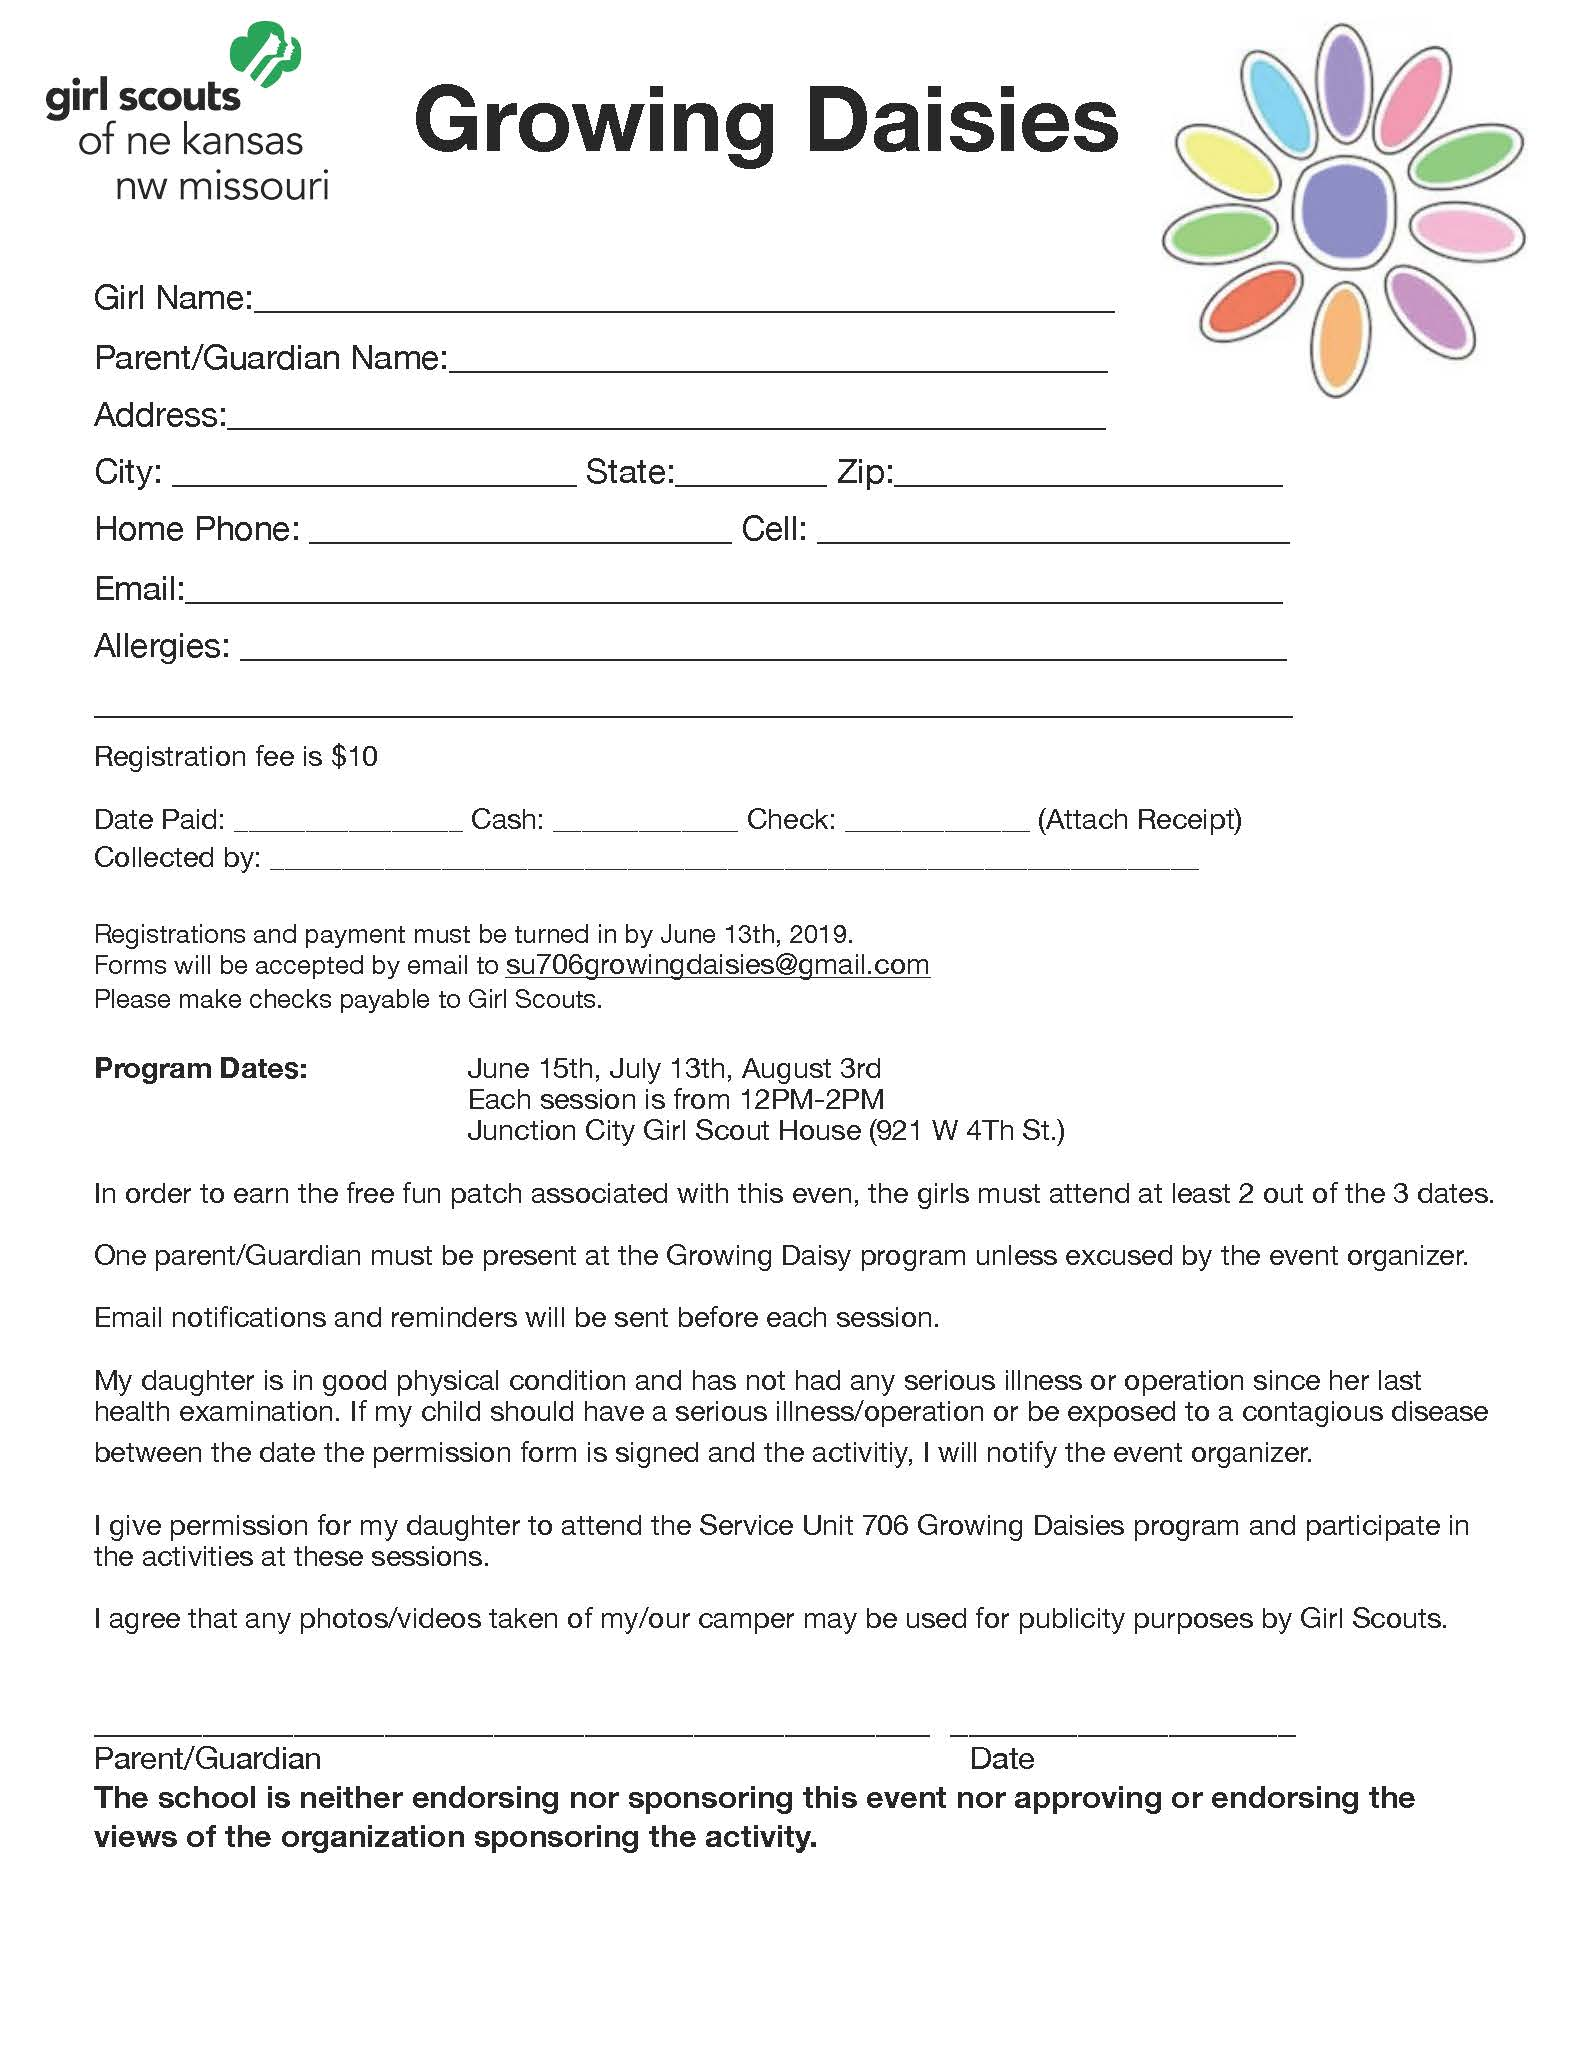 Growing Daisies Registration Form